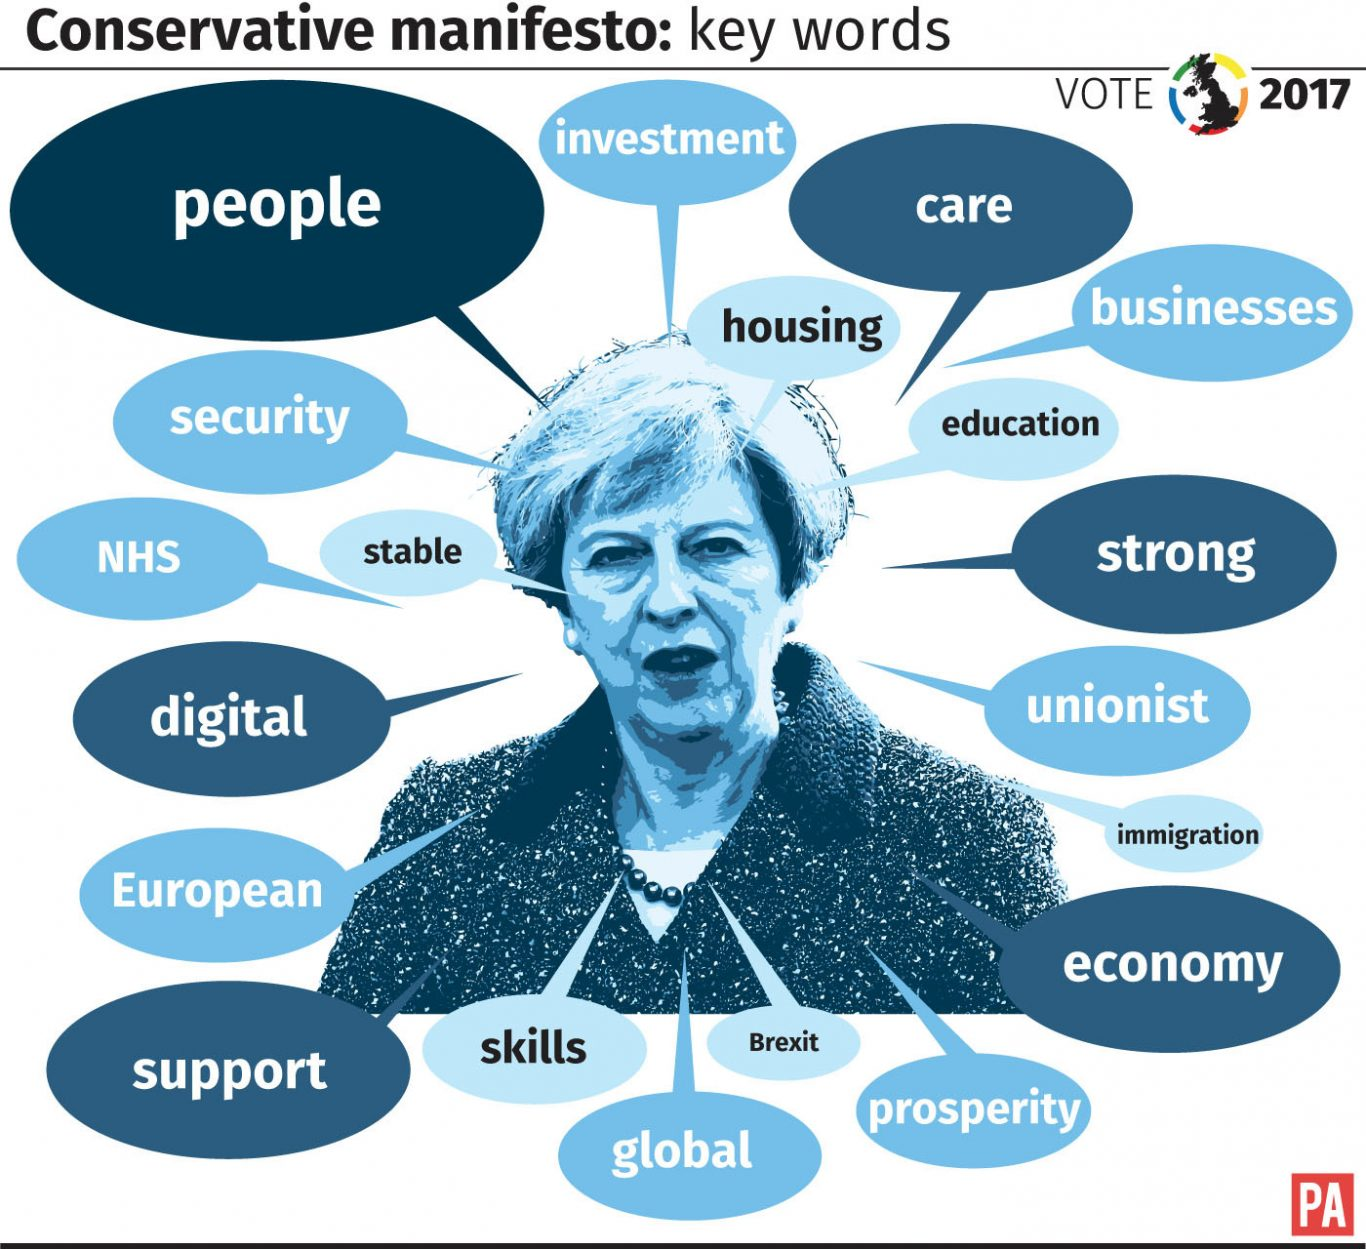 Key words from the Conservative party manifesto